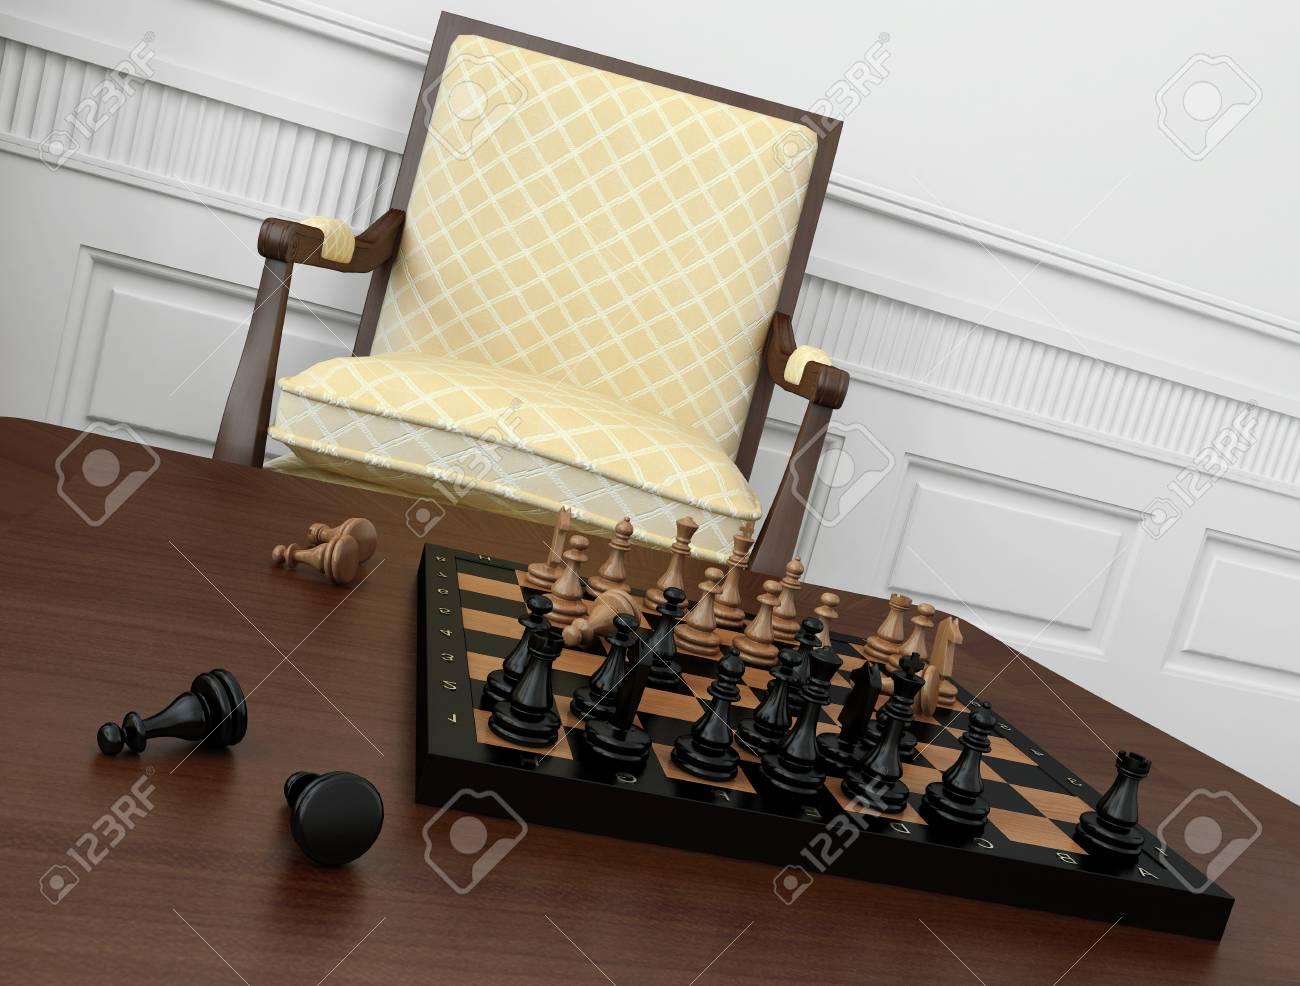 Stupendous Close Up Of Vintage Chess Game On Coffee Table With Chair In Ncnpc Chair Design For Home Ncnpcorg